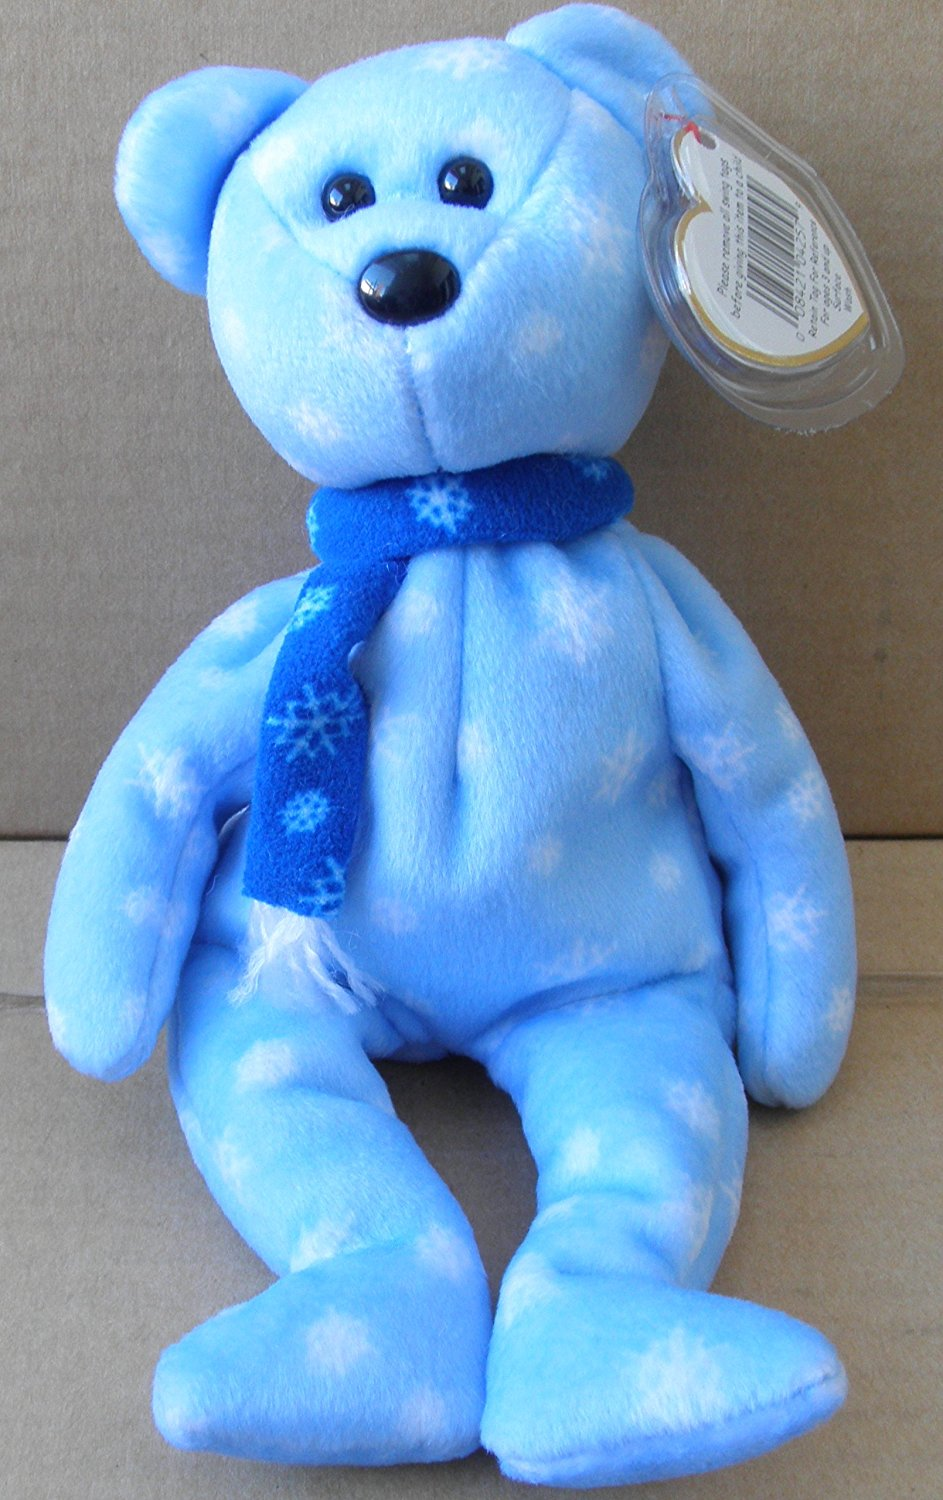 7405636e8f8 Get Quotations · TY Beanie Babies 1999 Holiday Teddy Bear Stuffed Animal  PlushToy - 8 1 2 inches